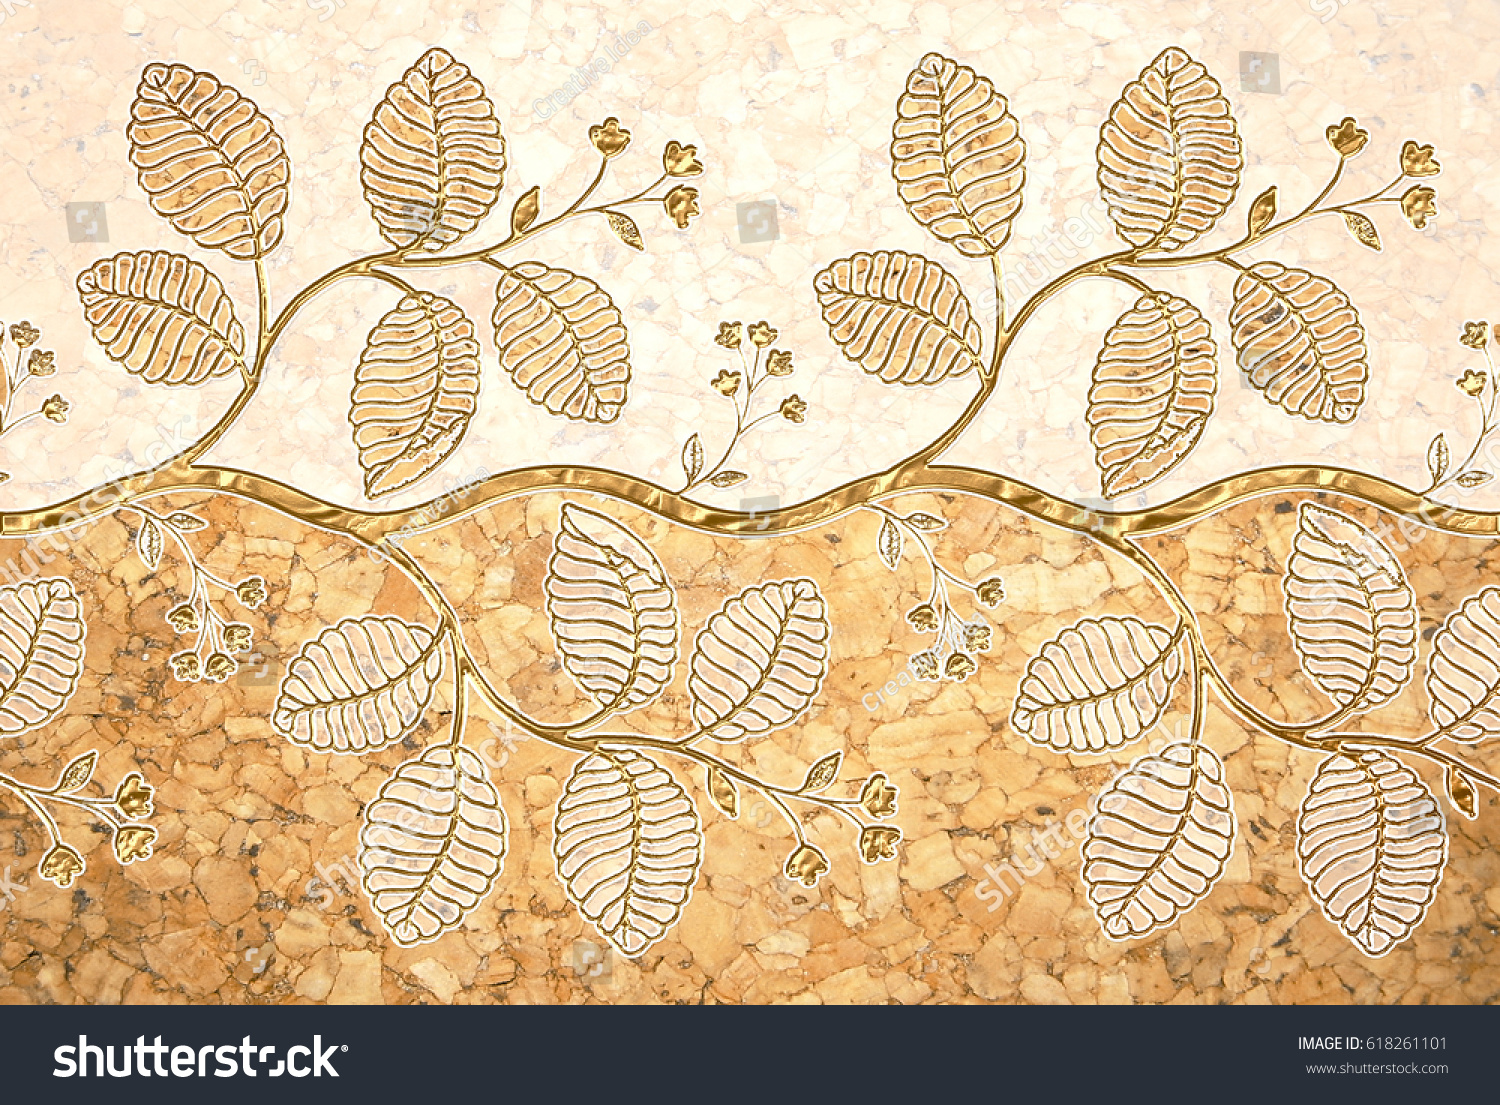 Unusual Wall Tiles Decorative Gallery - The Wall Art Decorations ...